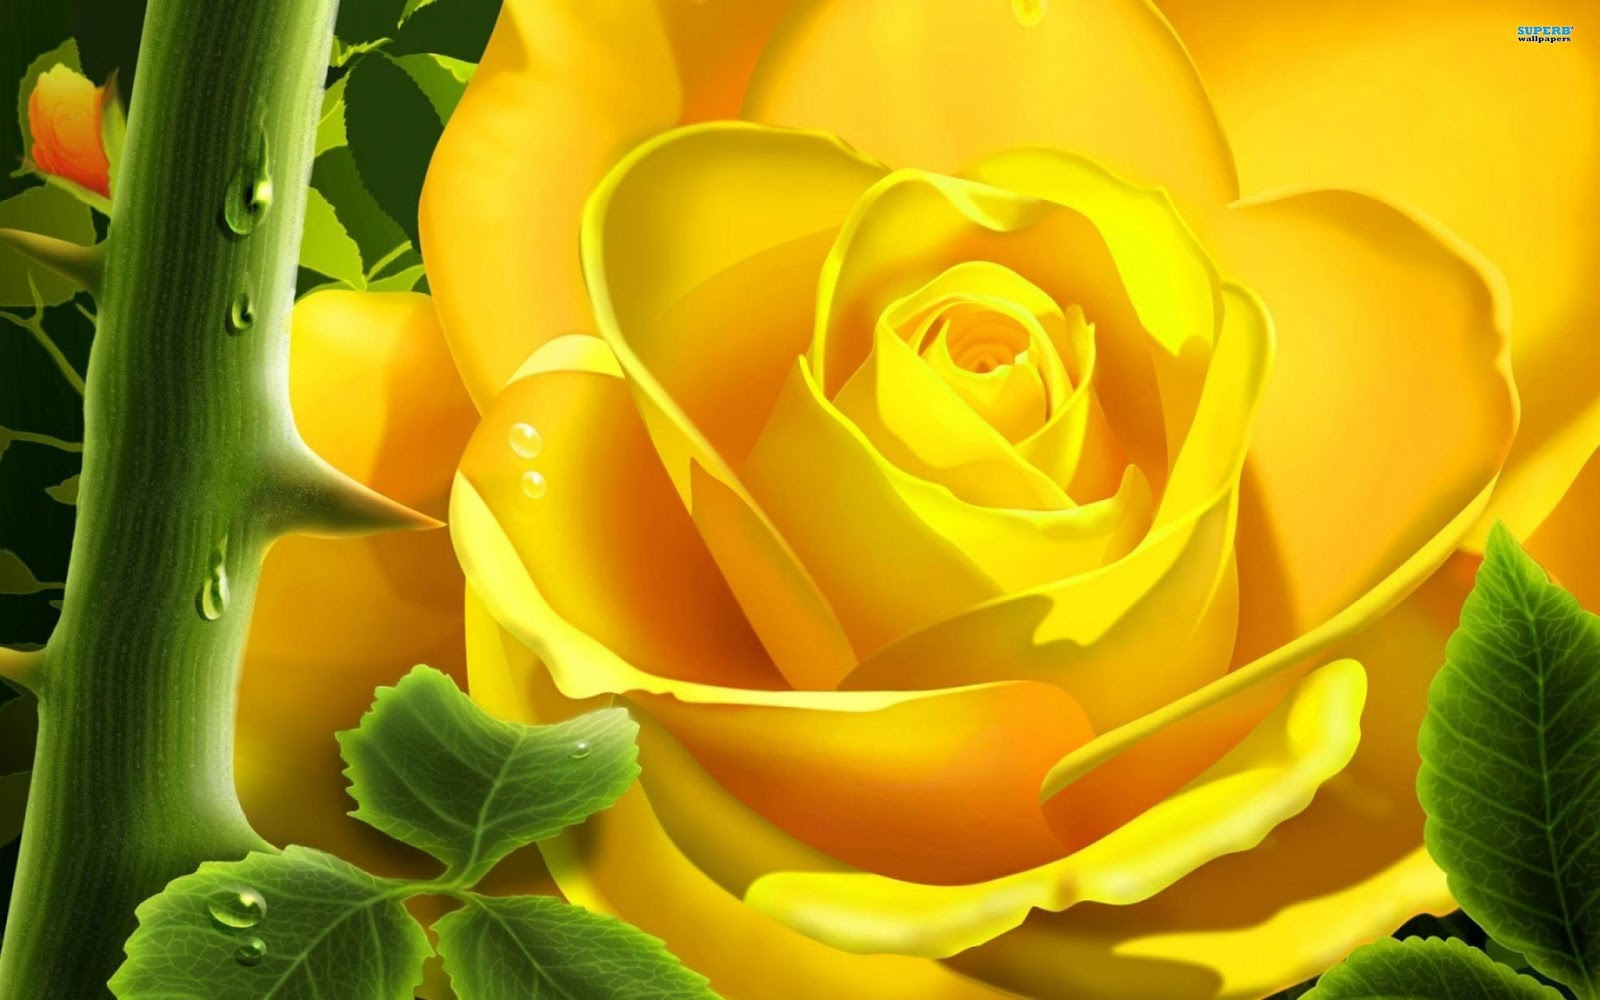 Rose flowers wallpapers real hd wallpapers - Flower wallpaper 3d pic ...